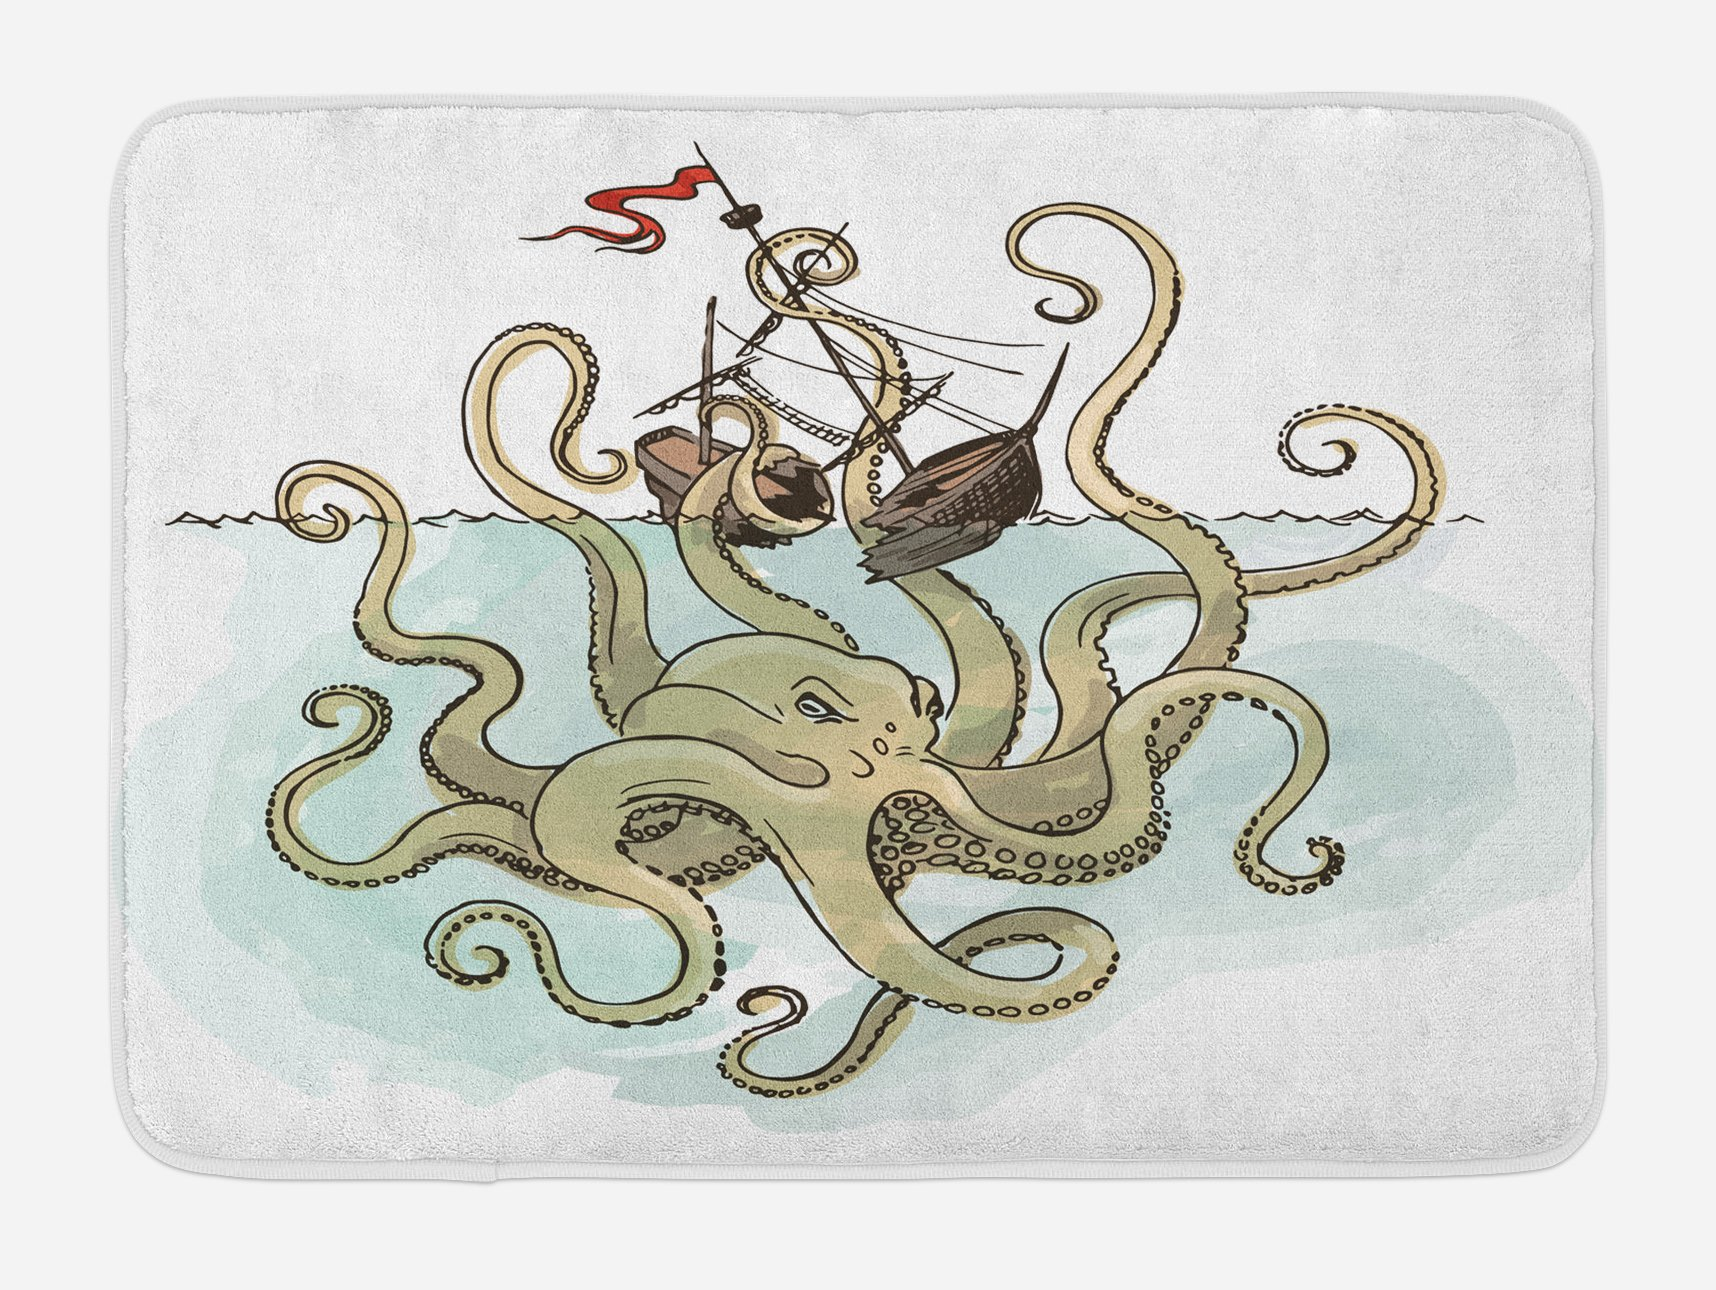 Ambesonne Kraken Bath Mat, Octopus Sinking The Pirate Ships Greek Myth Fish Culture Cartoon Artwork Image, Plush Bathroom Decor Mat with Non Slip Backing, 29.5 W X 17.5 W Inches, Tan Pale Green